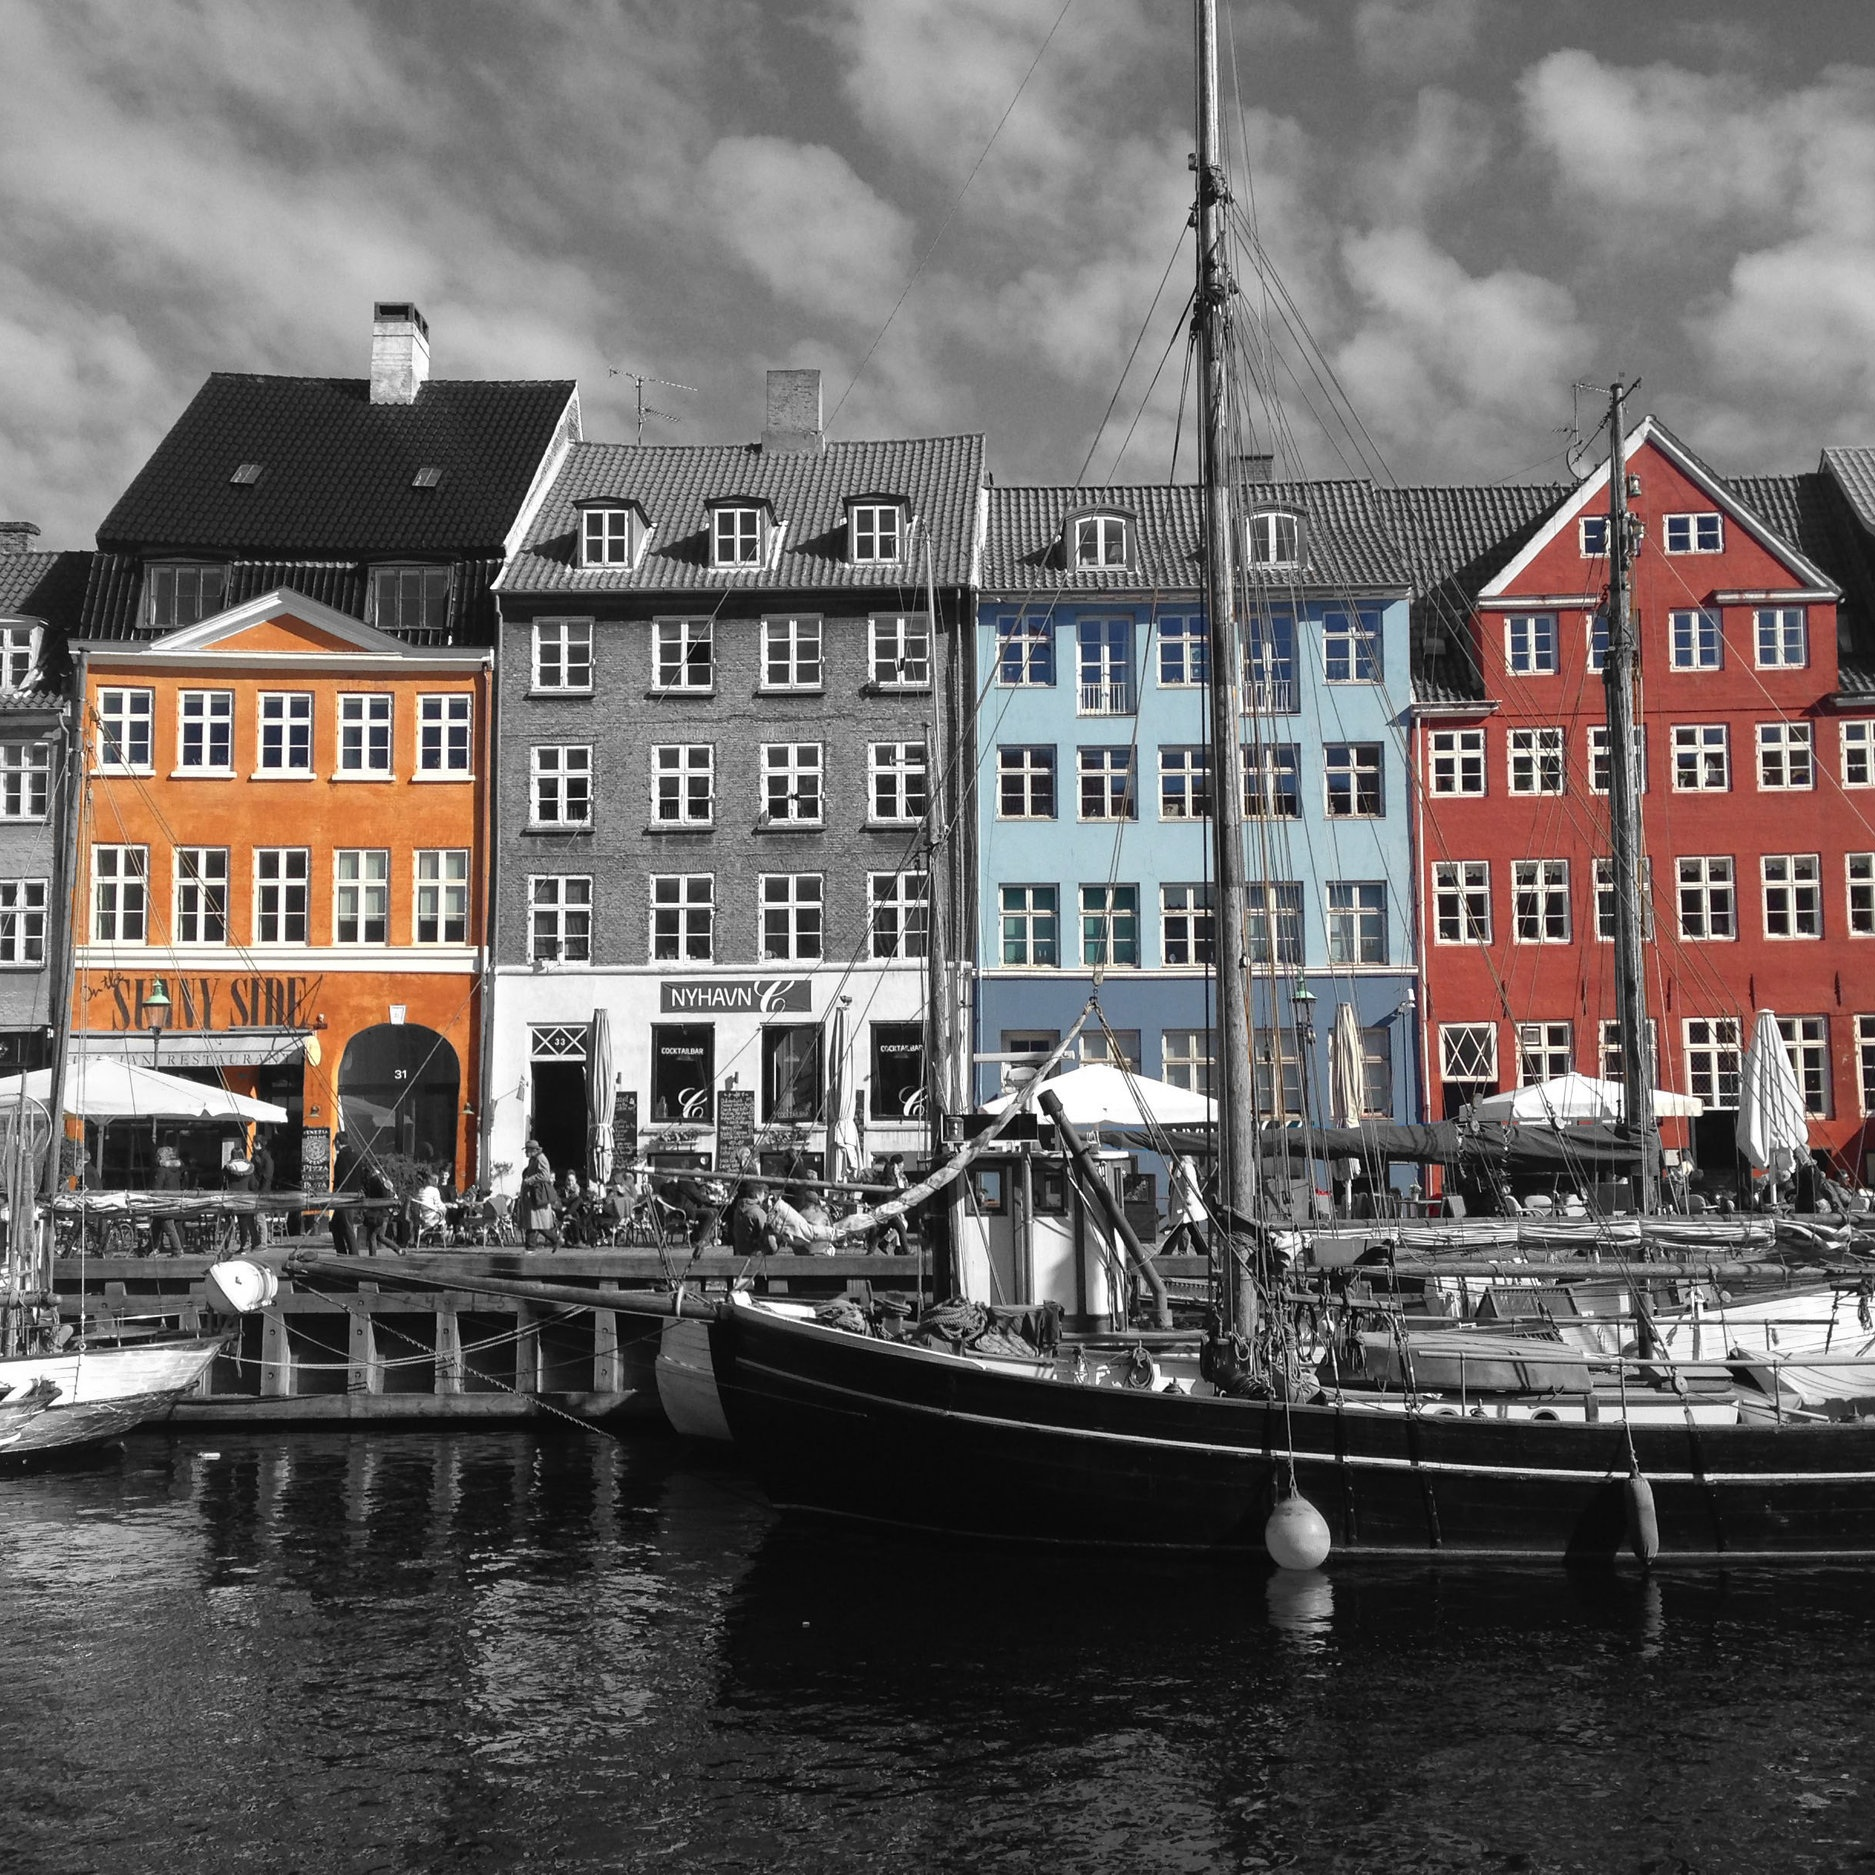 A haven for people - Nyhavn, Copenhagen. Denmark (Captured by Emily Sproule)